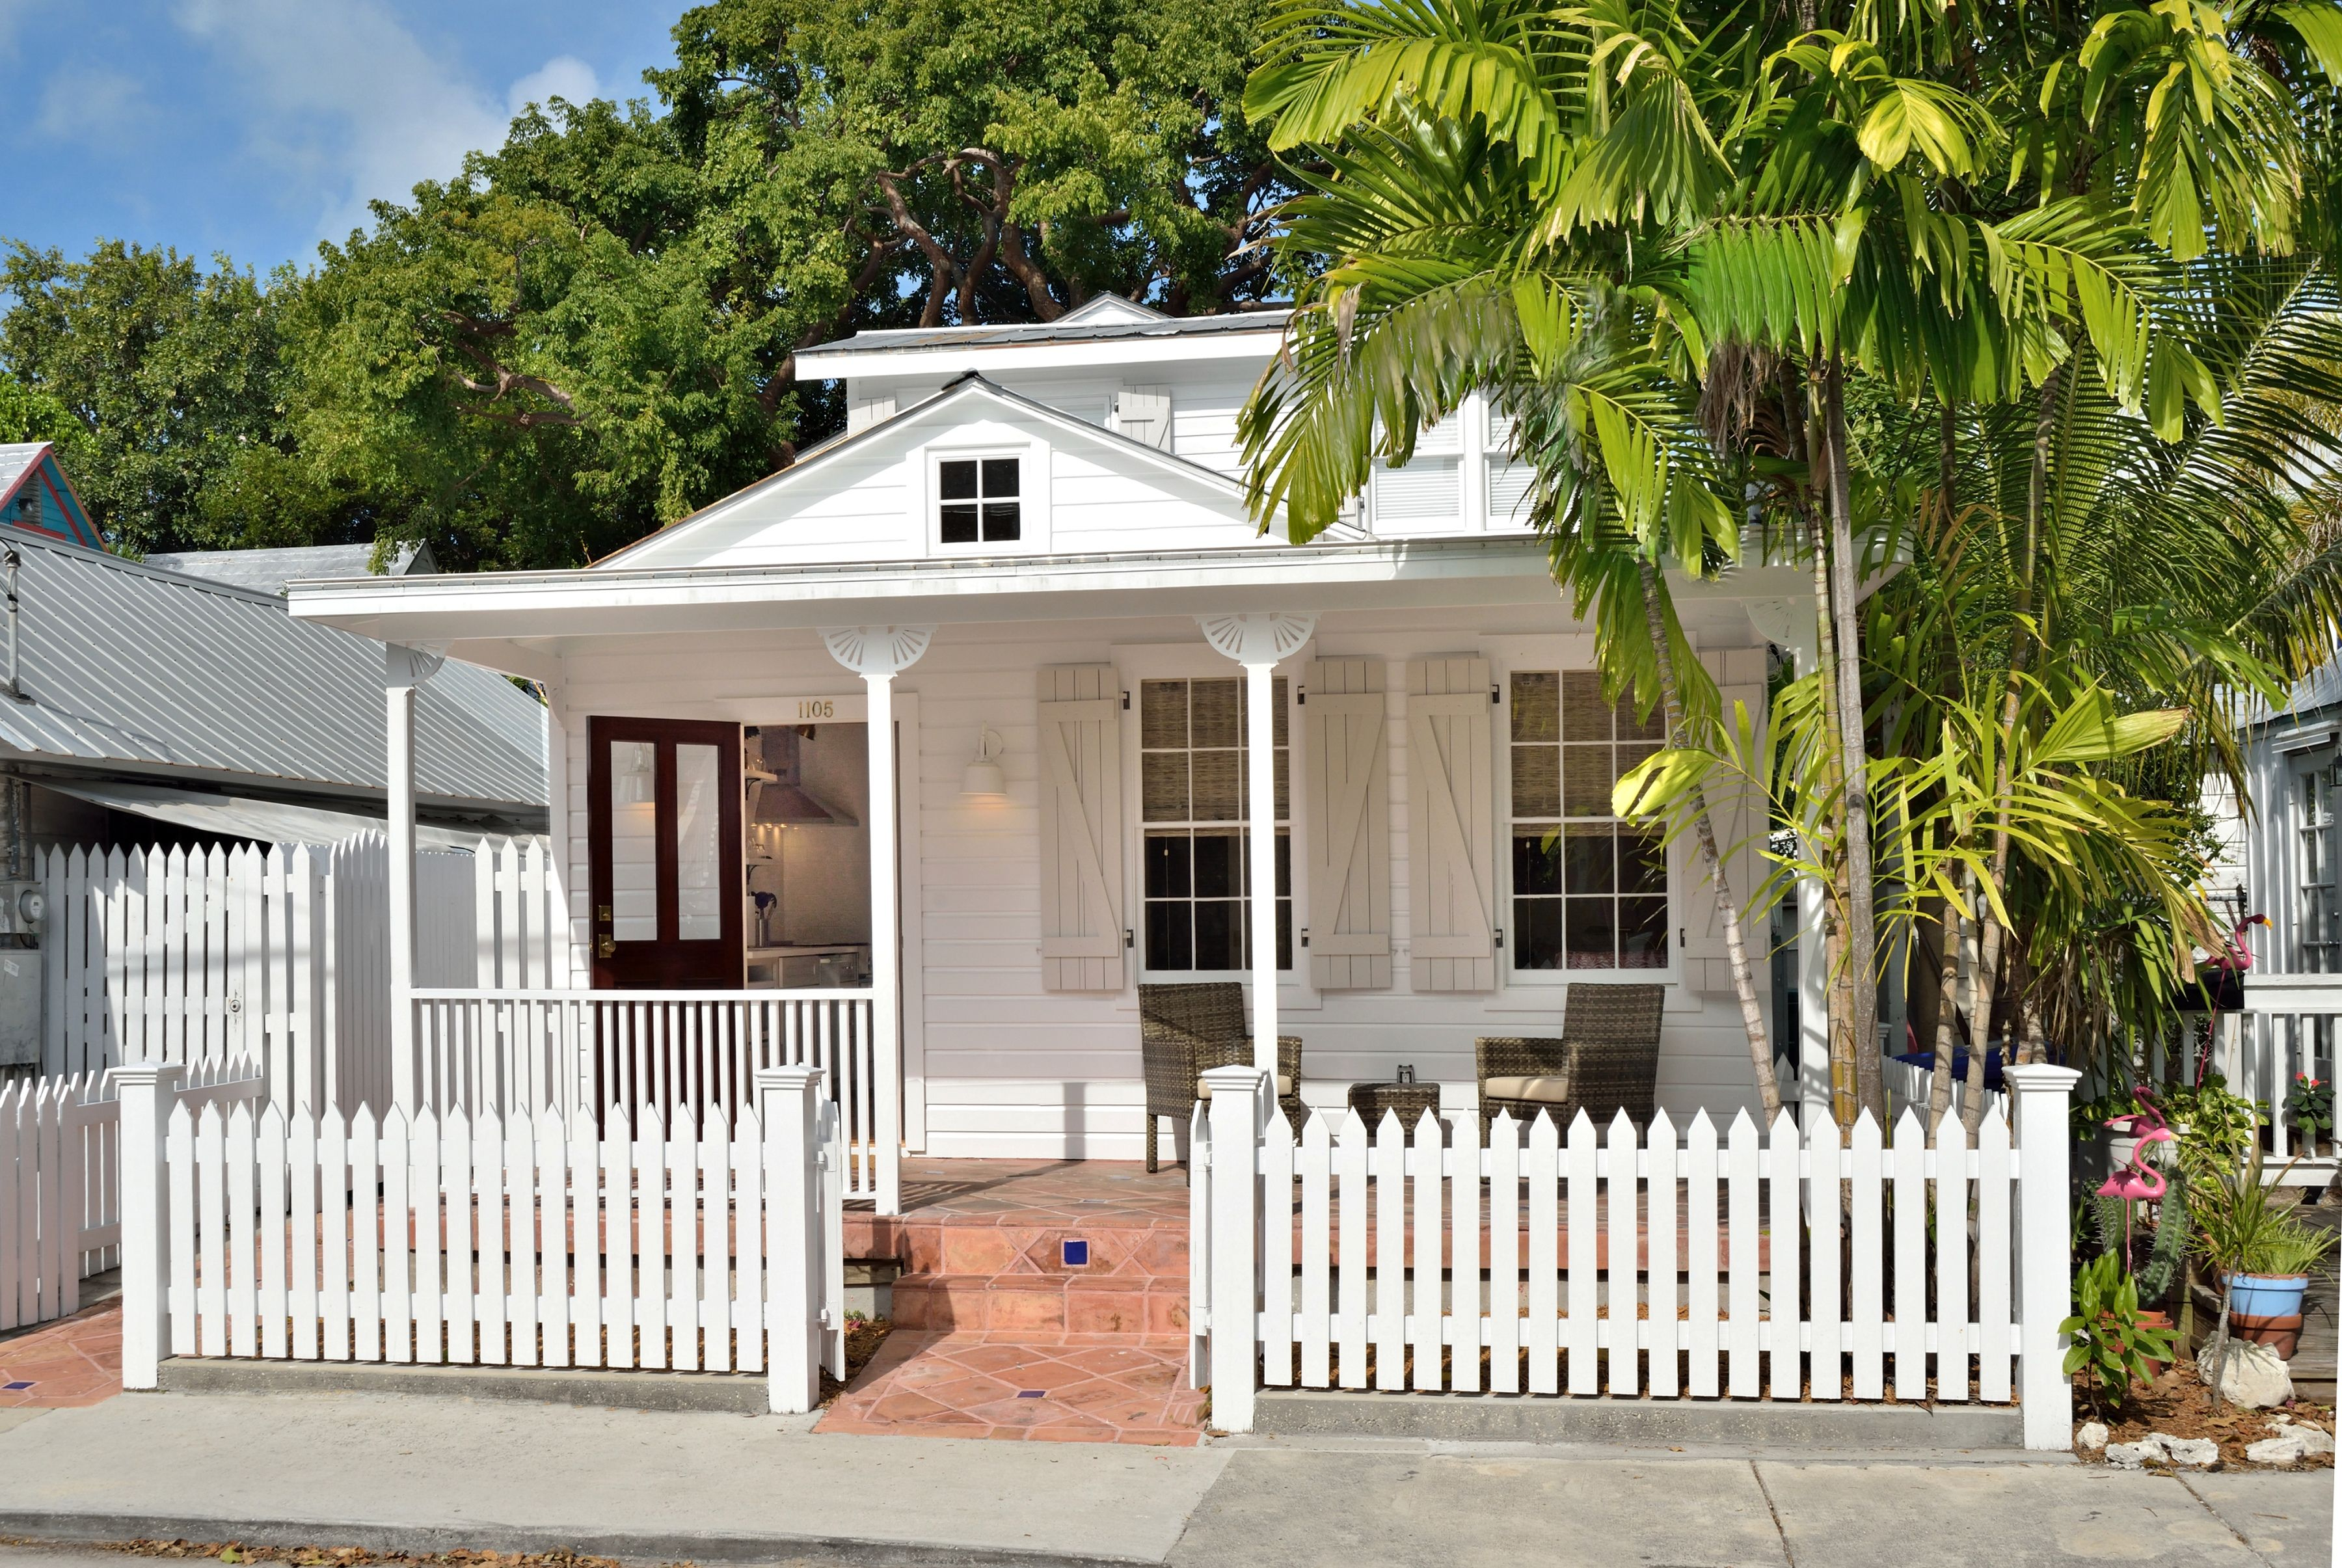 For Sale: Sunny Cottage in Key West, Florida